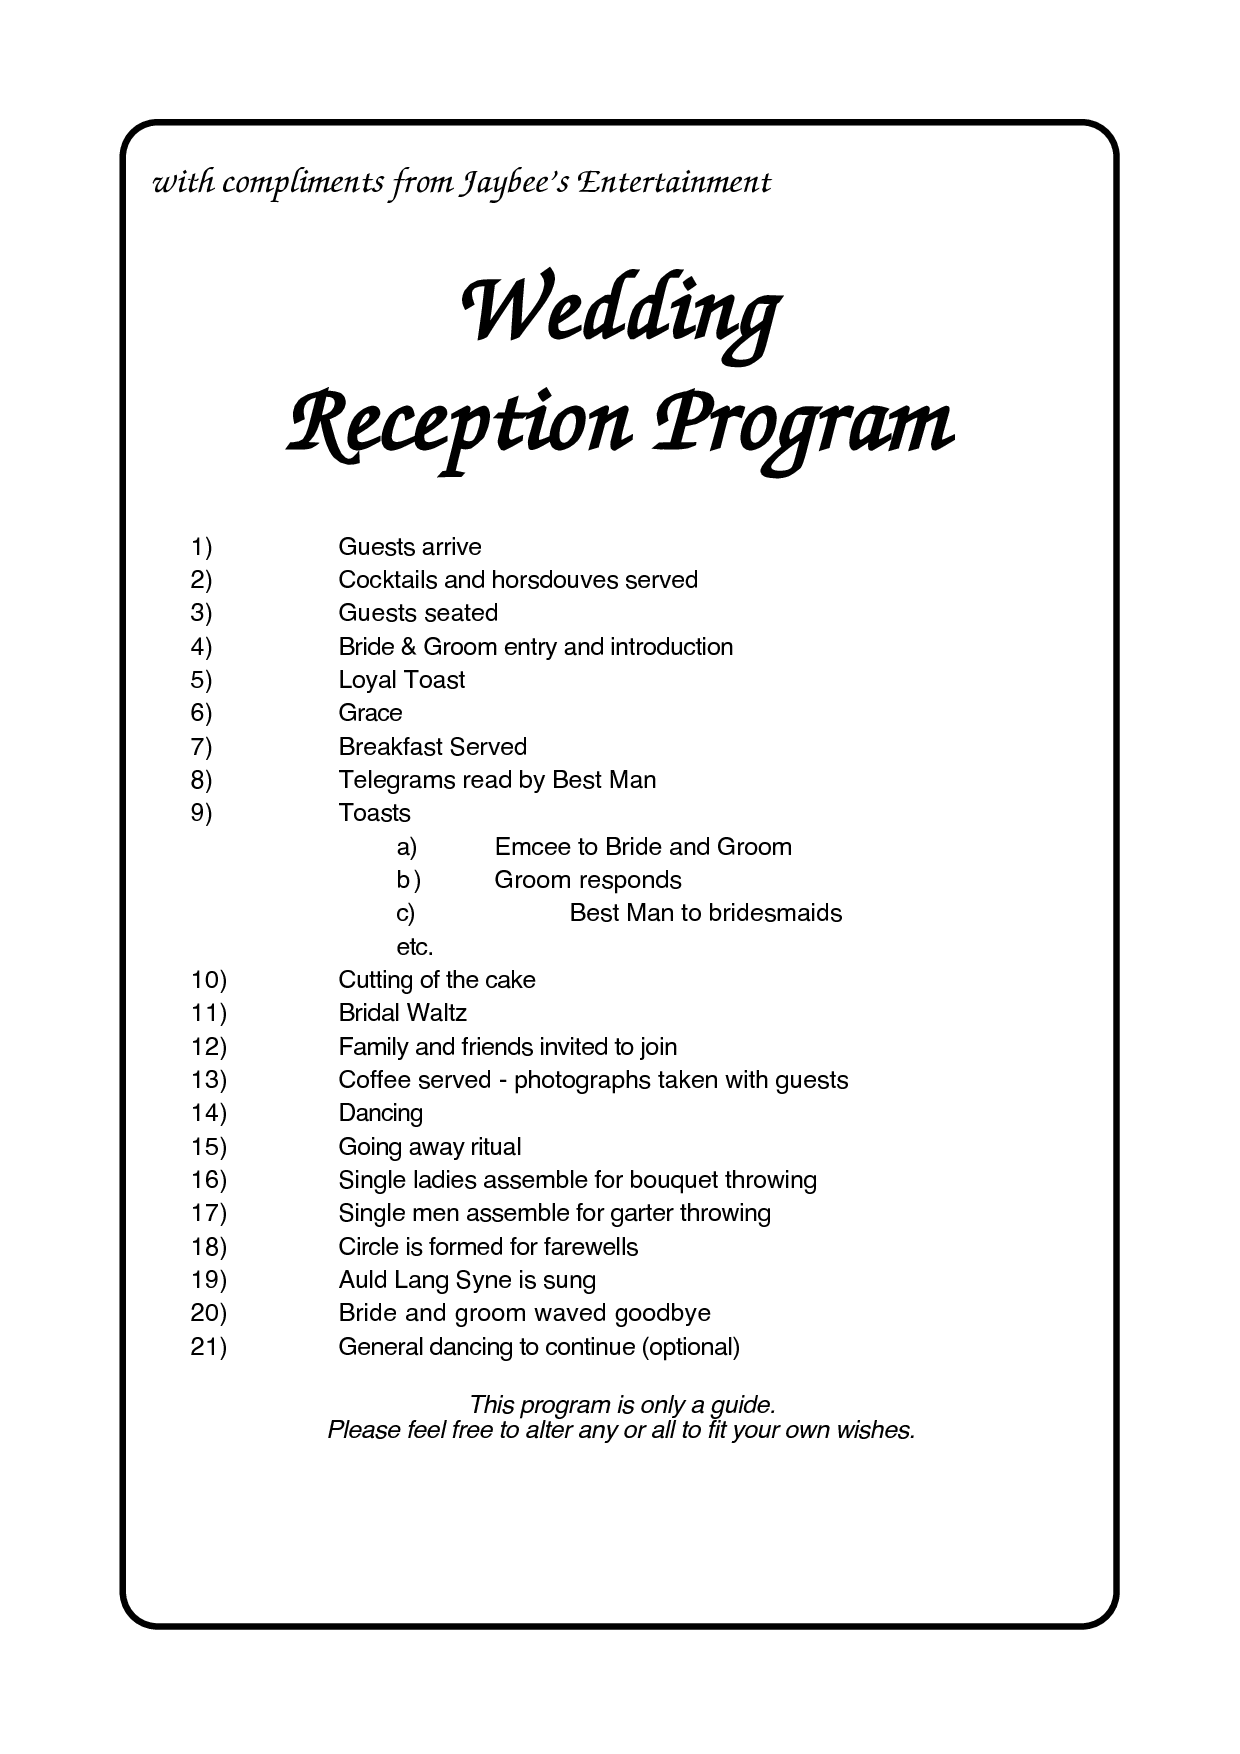 Wedding Program Order of Reception |  Jaybee s Entertainment